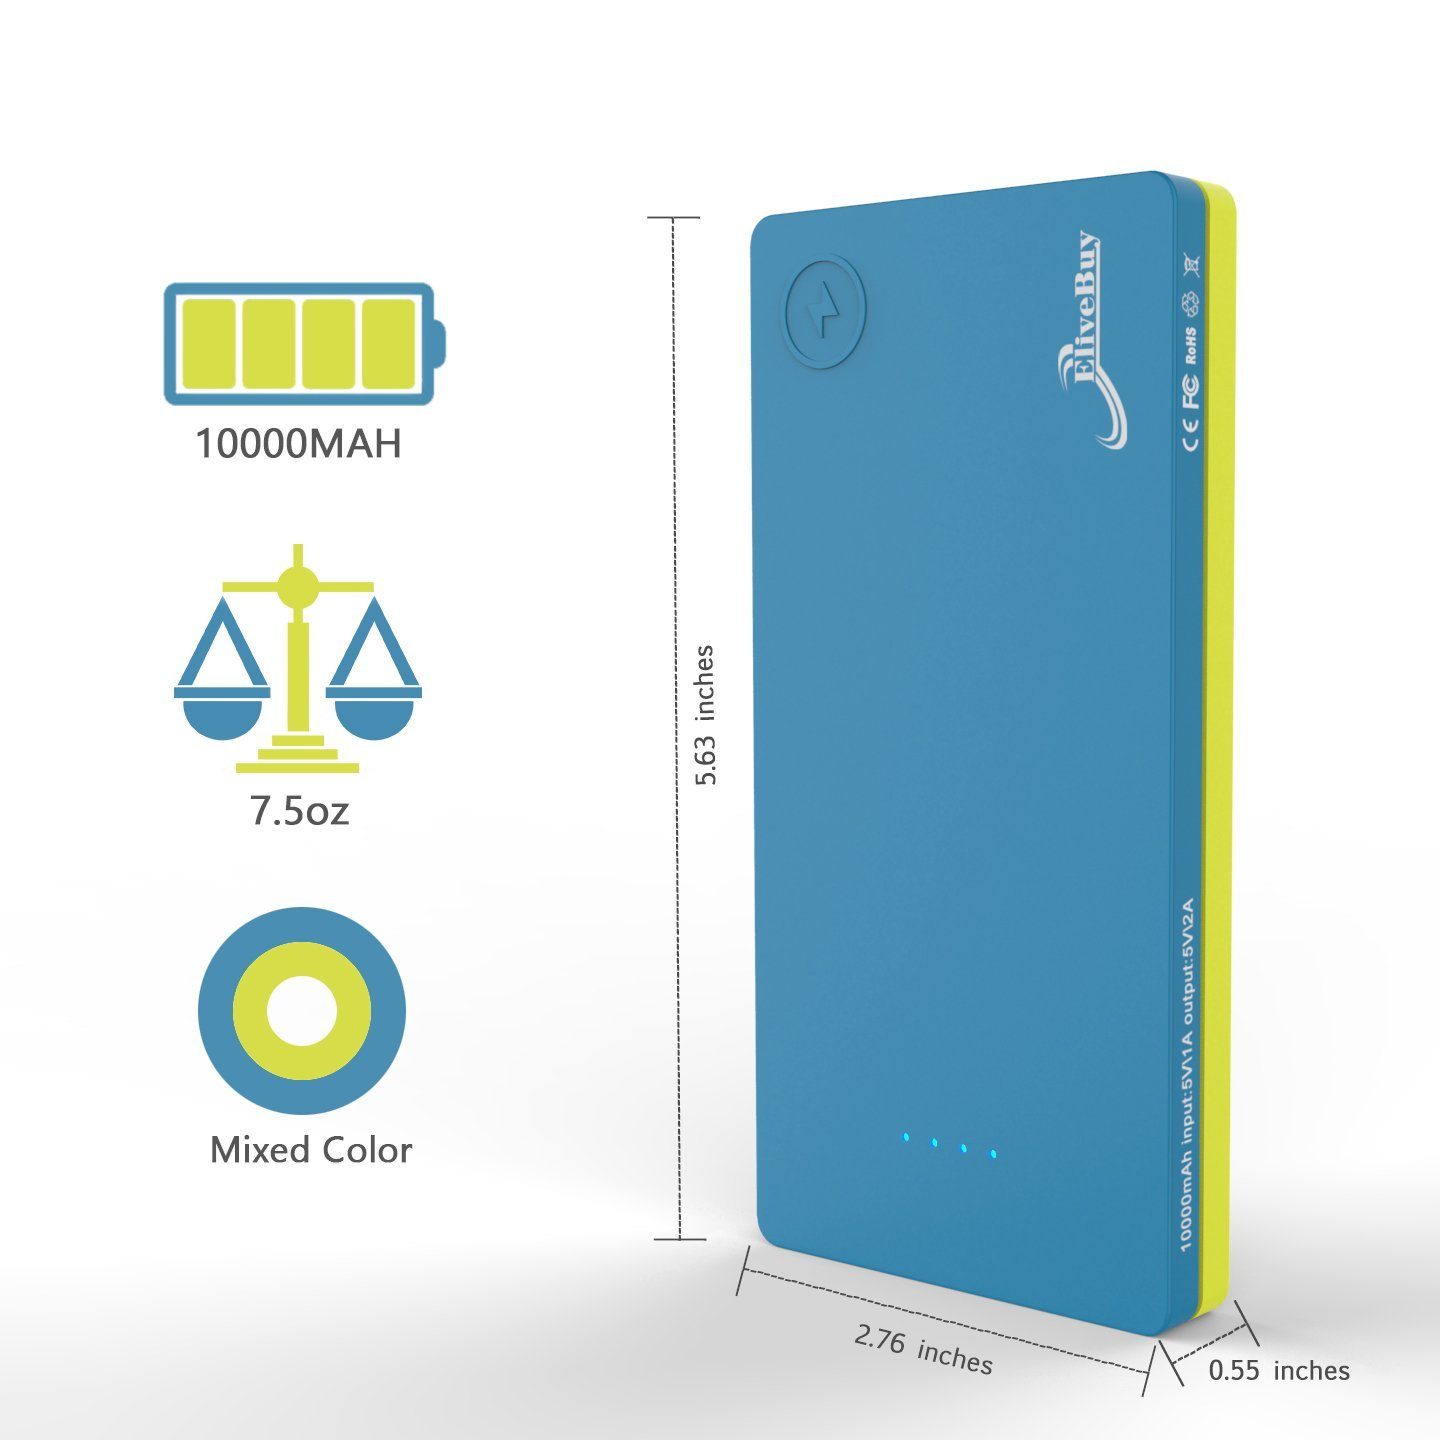 Elivebuy iMiX 2nd Gen 10000mAh Dual-Port Portable USB Power Bank - Blue /  Yellow - CHARGE WITH POWER